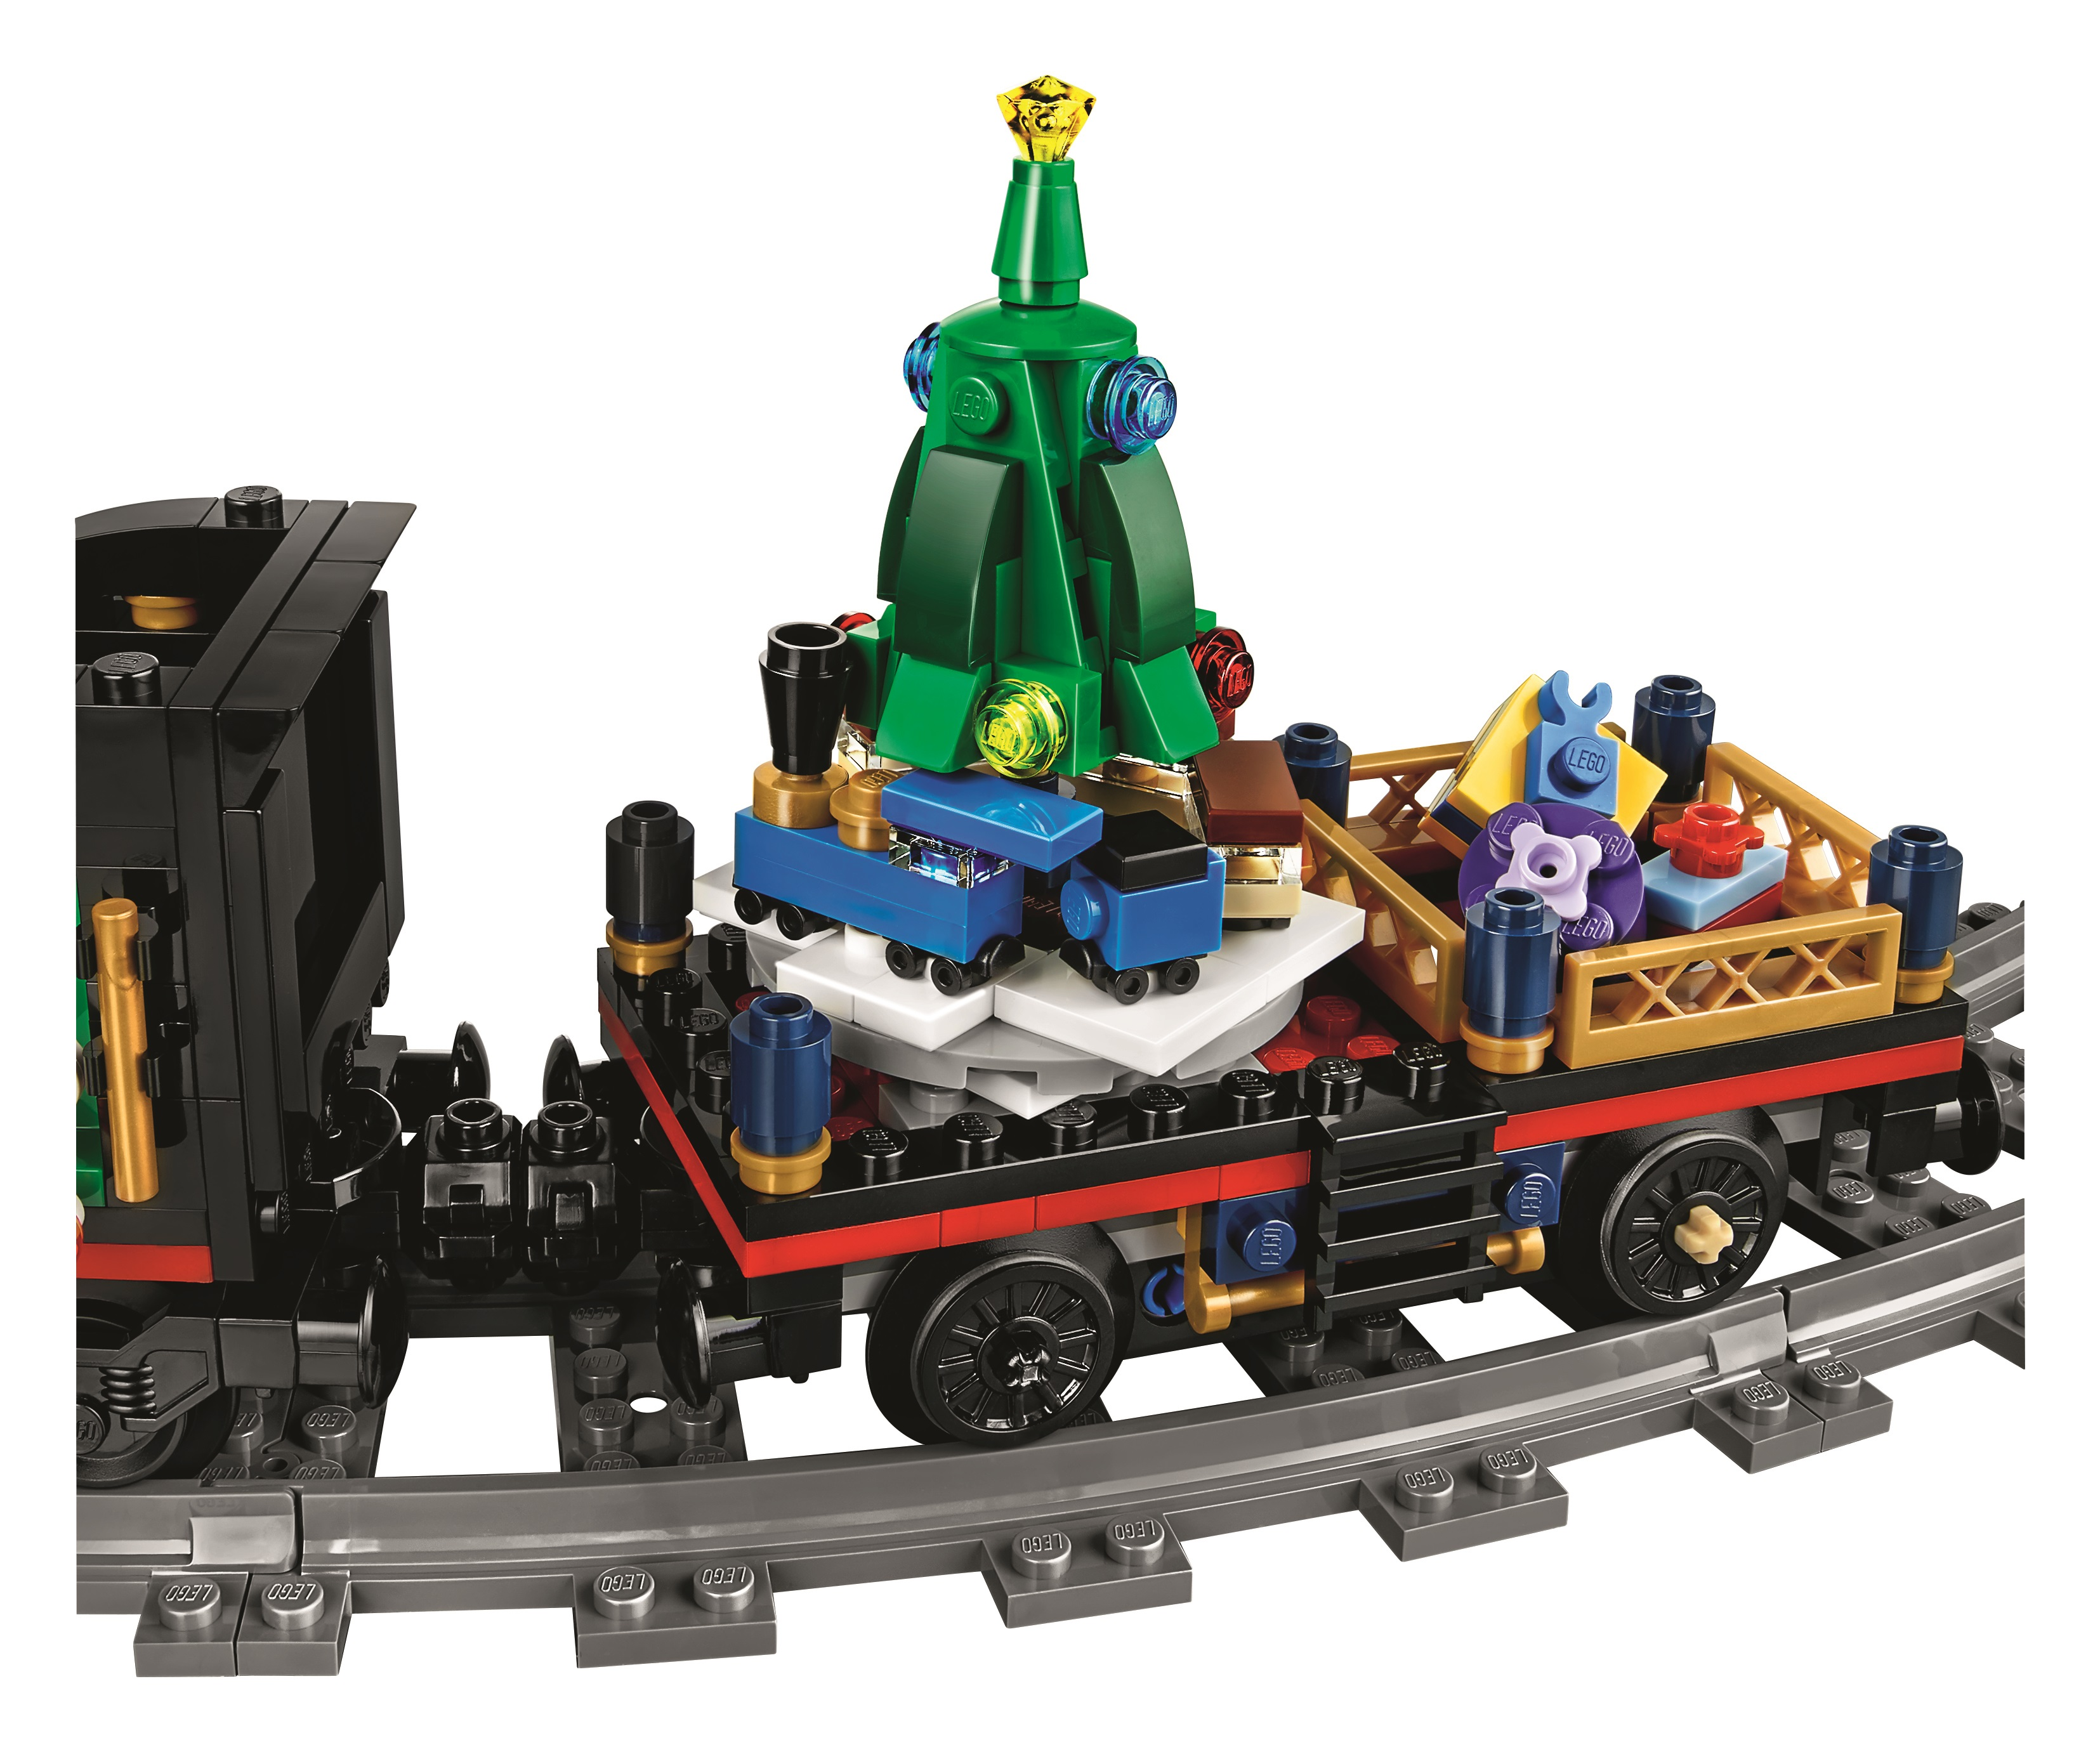 Lego Christmas Train.Christmas Comes Early With The Lego 10254 Winter Holiday